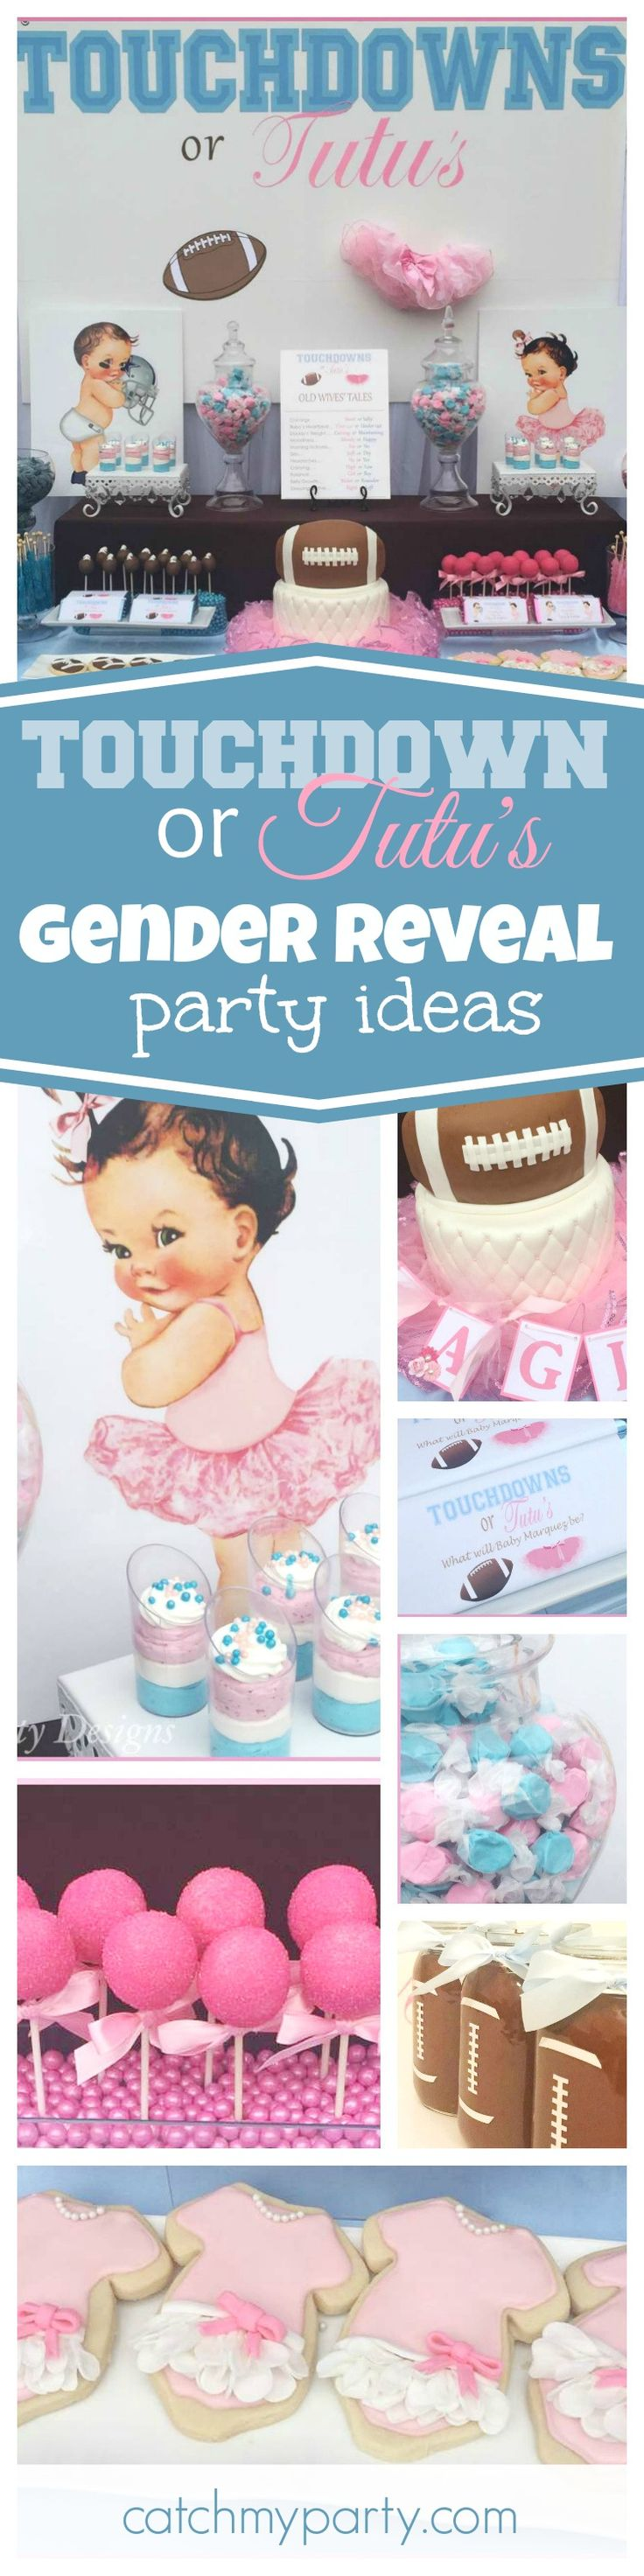 74 best Gender Reveal Party Ideas images on Pinterest